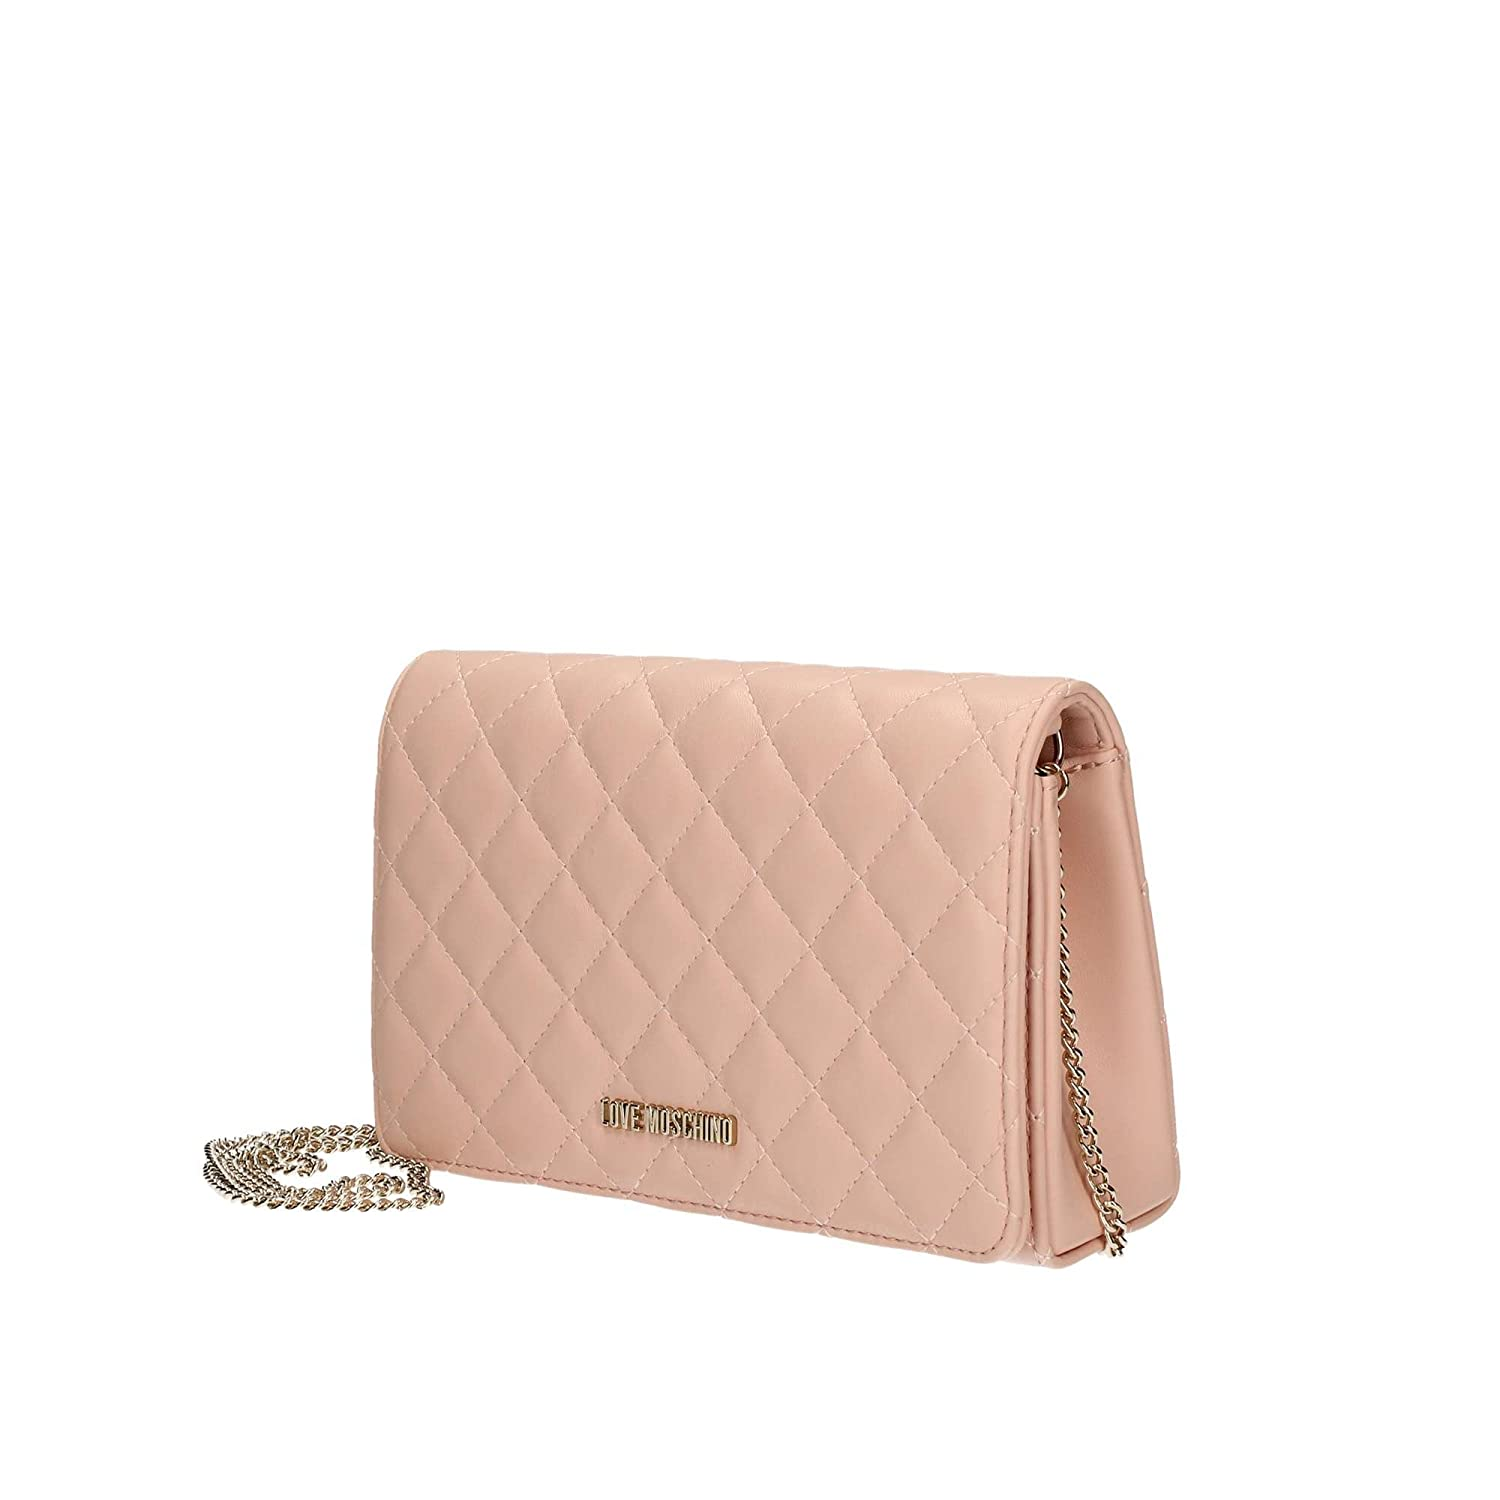 90db039451 Amazon.com: LOVE Moschino Women's Quilted Evening Clutch Light Pink One  Size: Shoes